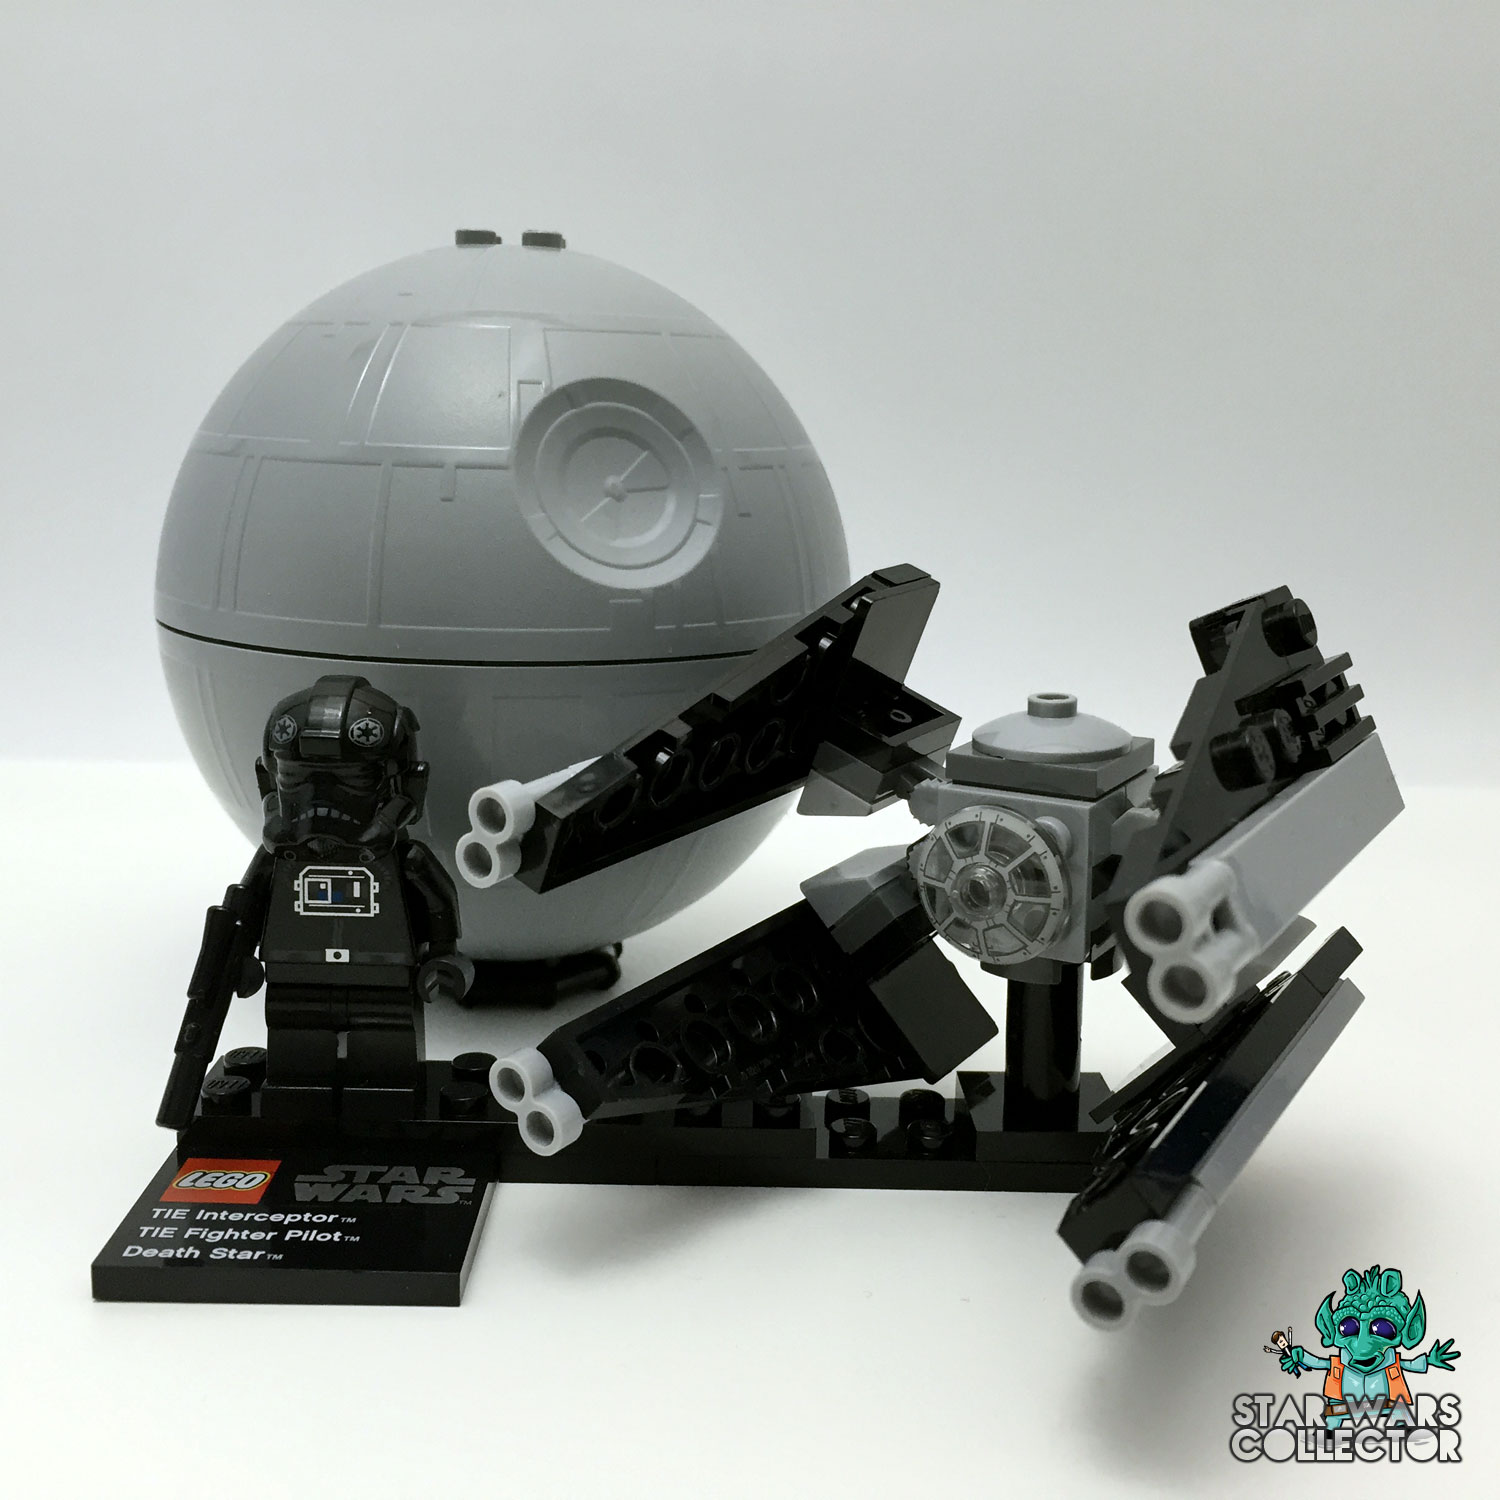 LEGO Star Wars 9676 TIE Interceptor & Death Star